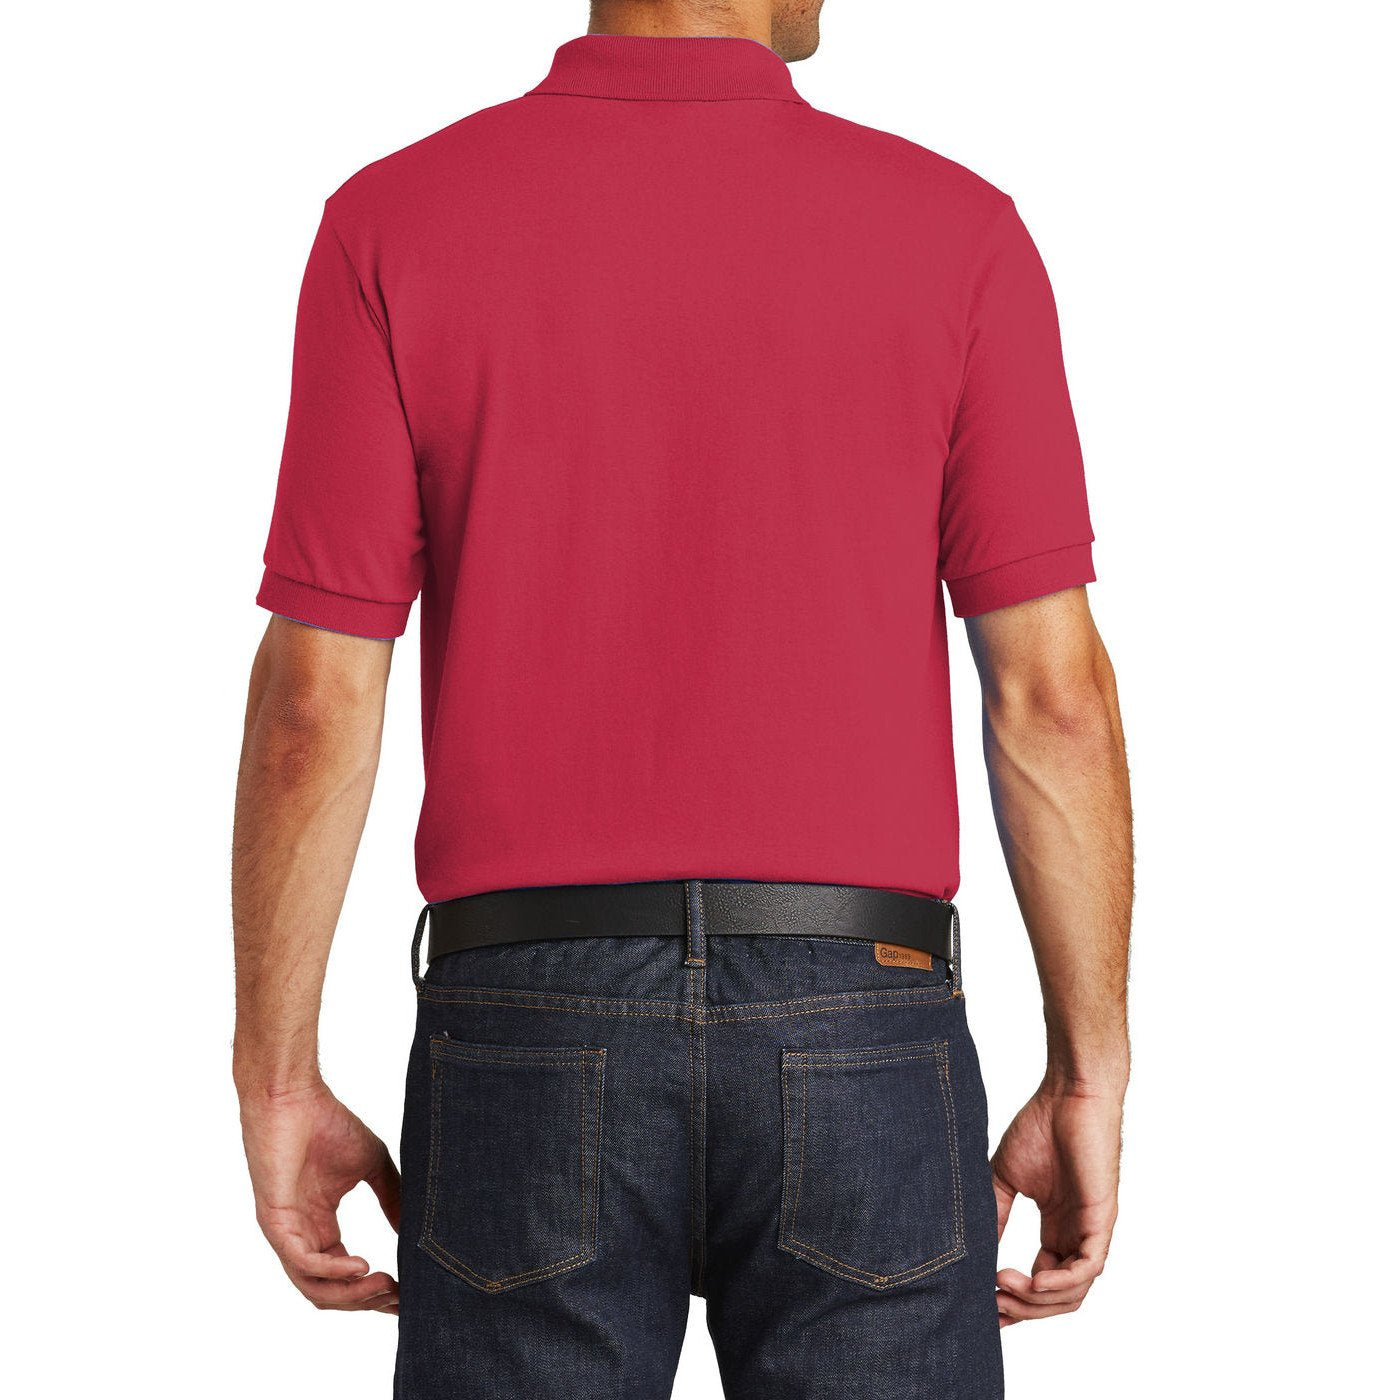 Mafoose Men's Core Blend Jersey Knit Pocket Polo Shirt Red